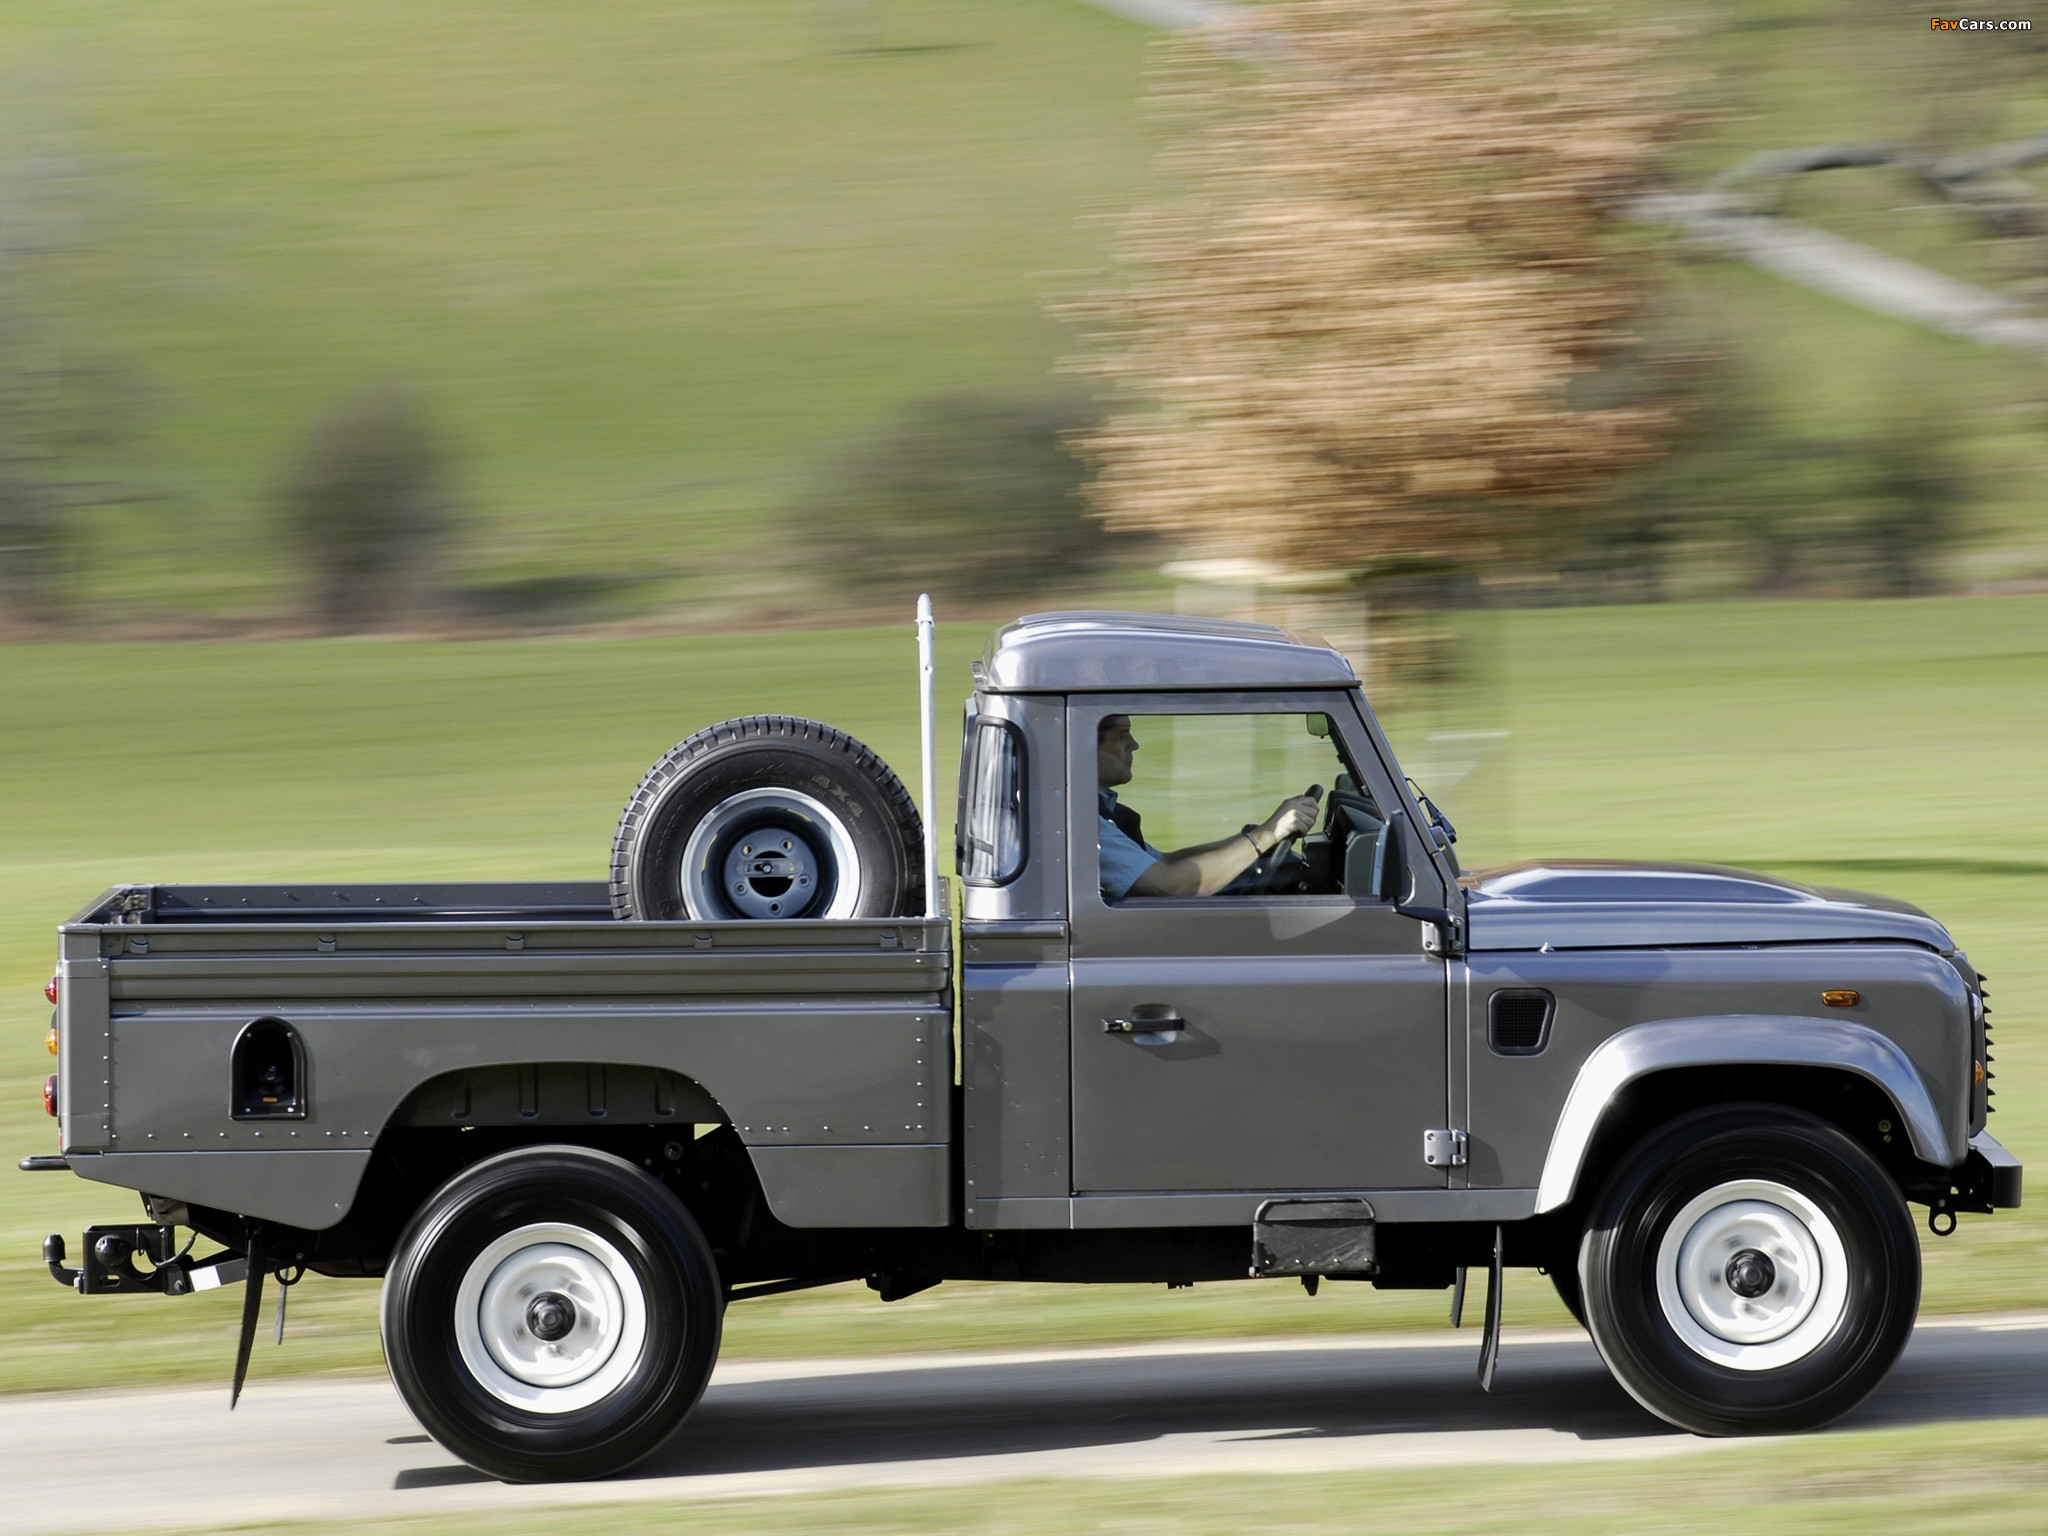 Land rover defender 110 puma tdci high capacity pick up land rover pinterest land rover defender 110 defender 110 and land rovers